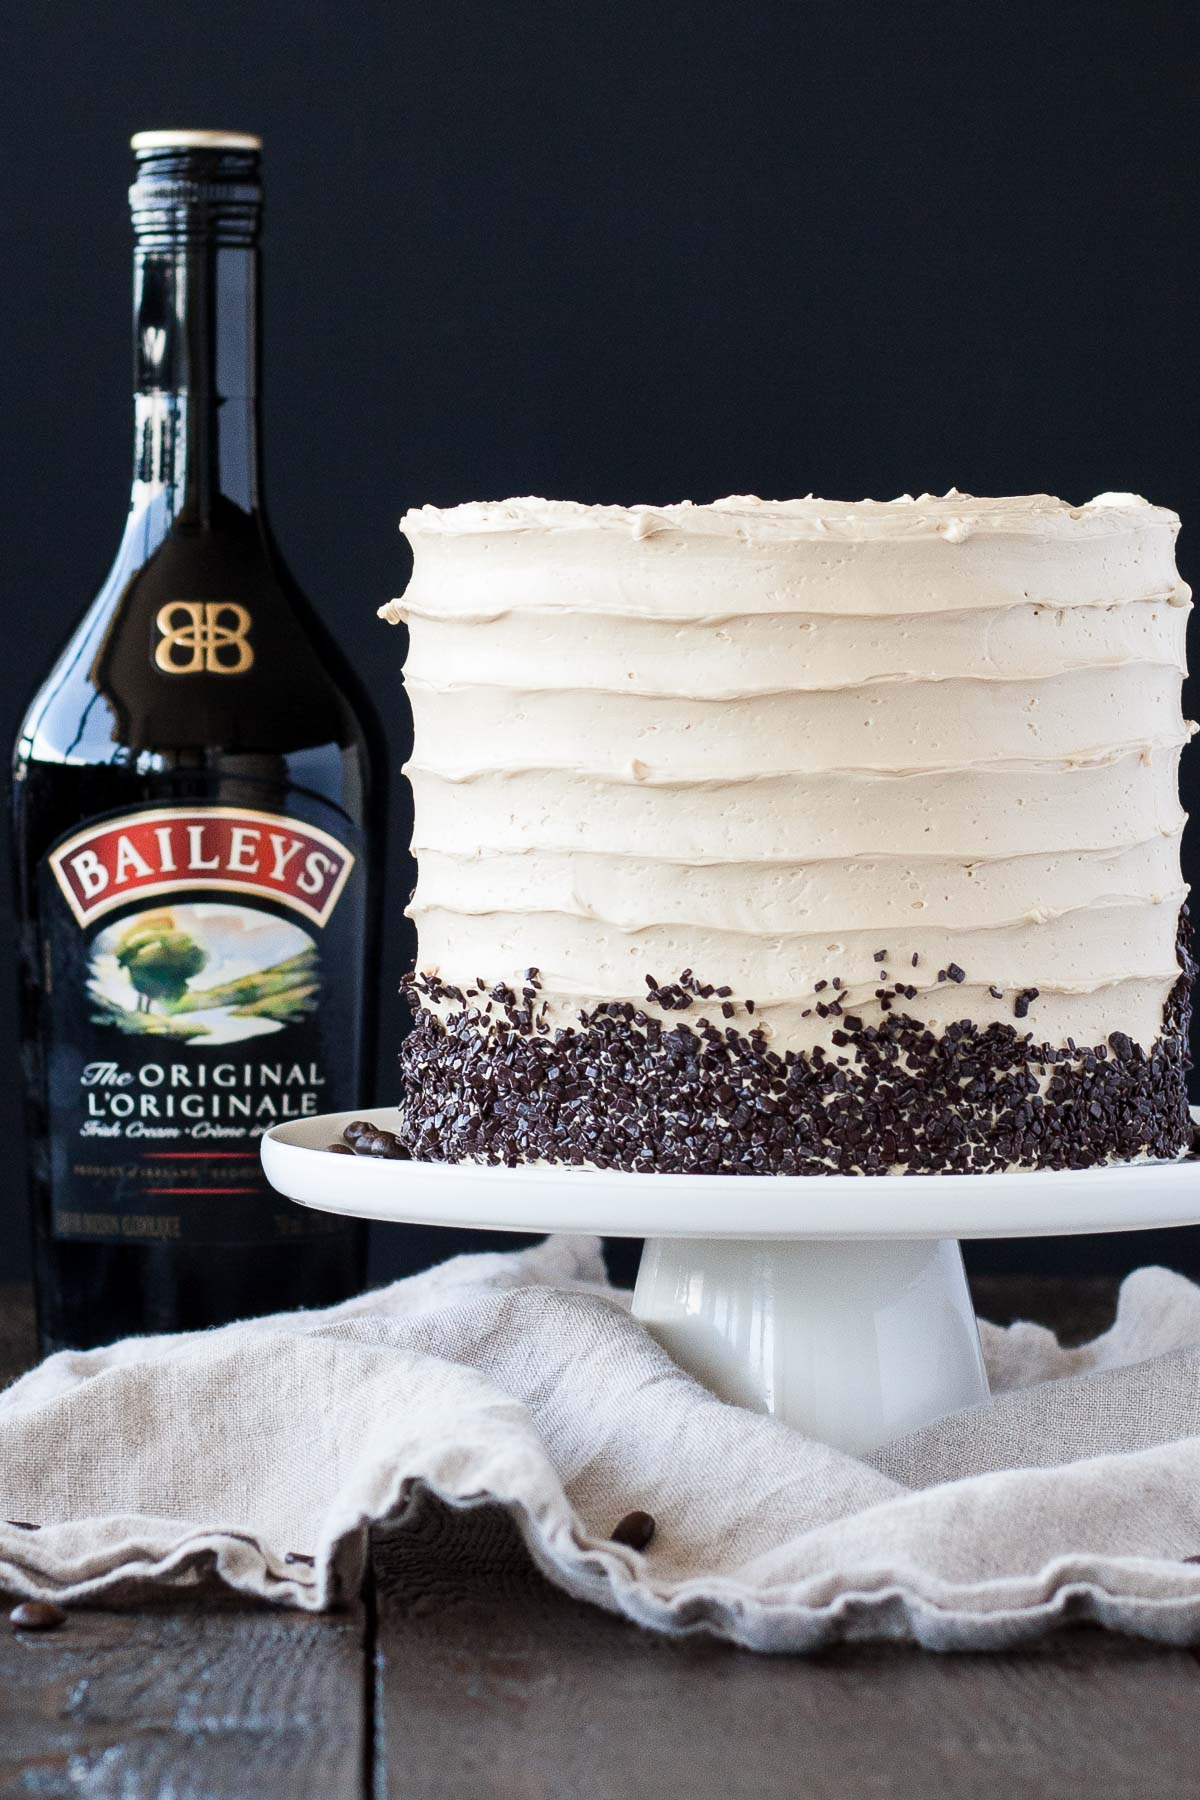 Cake on a white cake stand with a bottle of Baileys behind it.